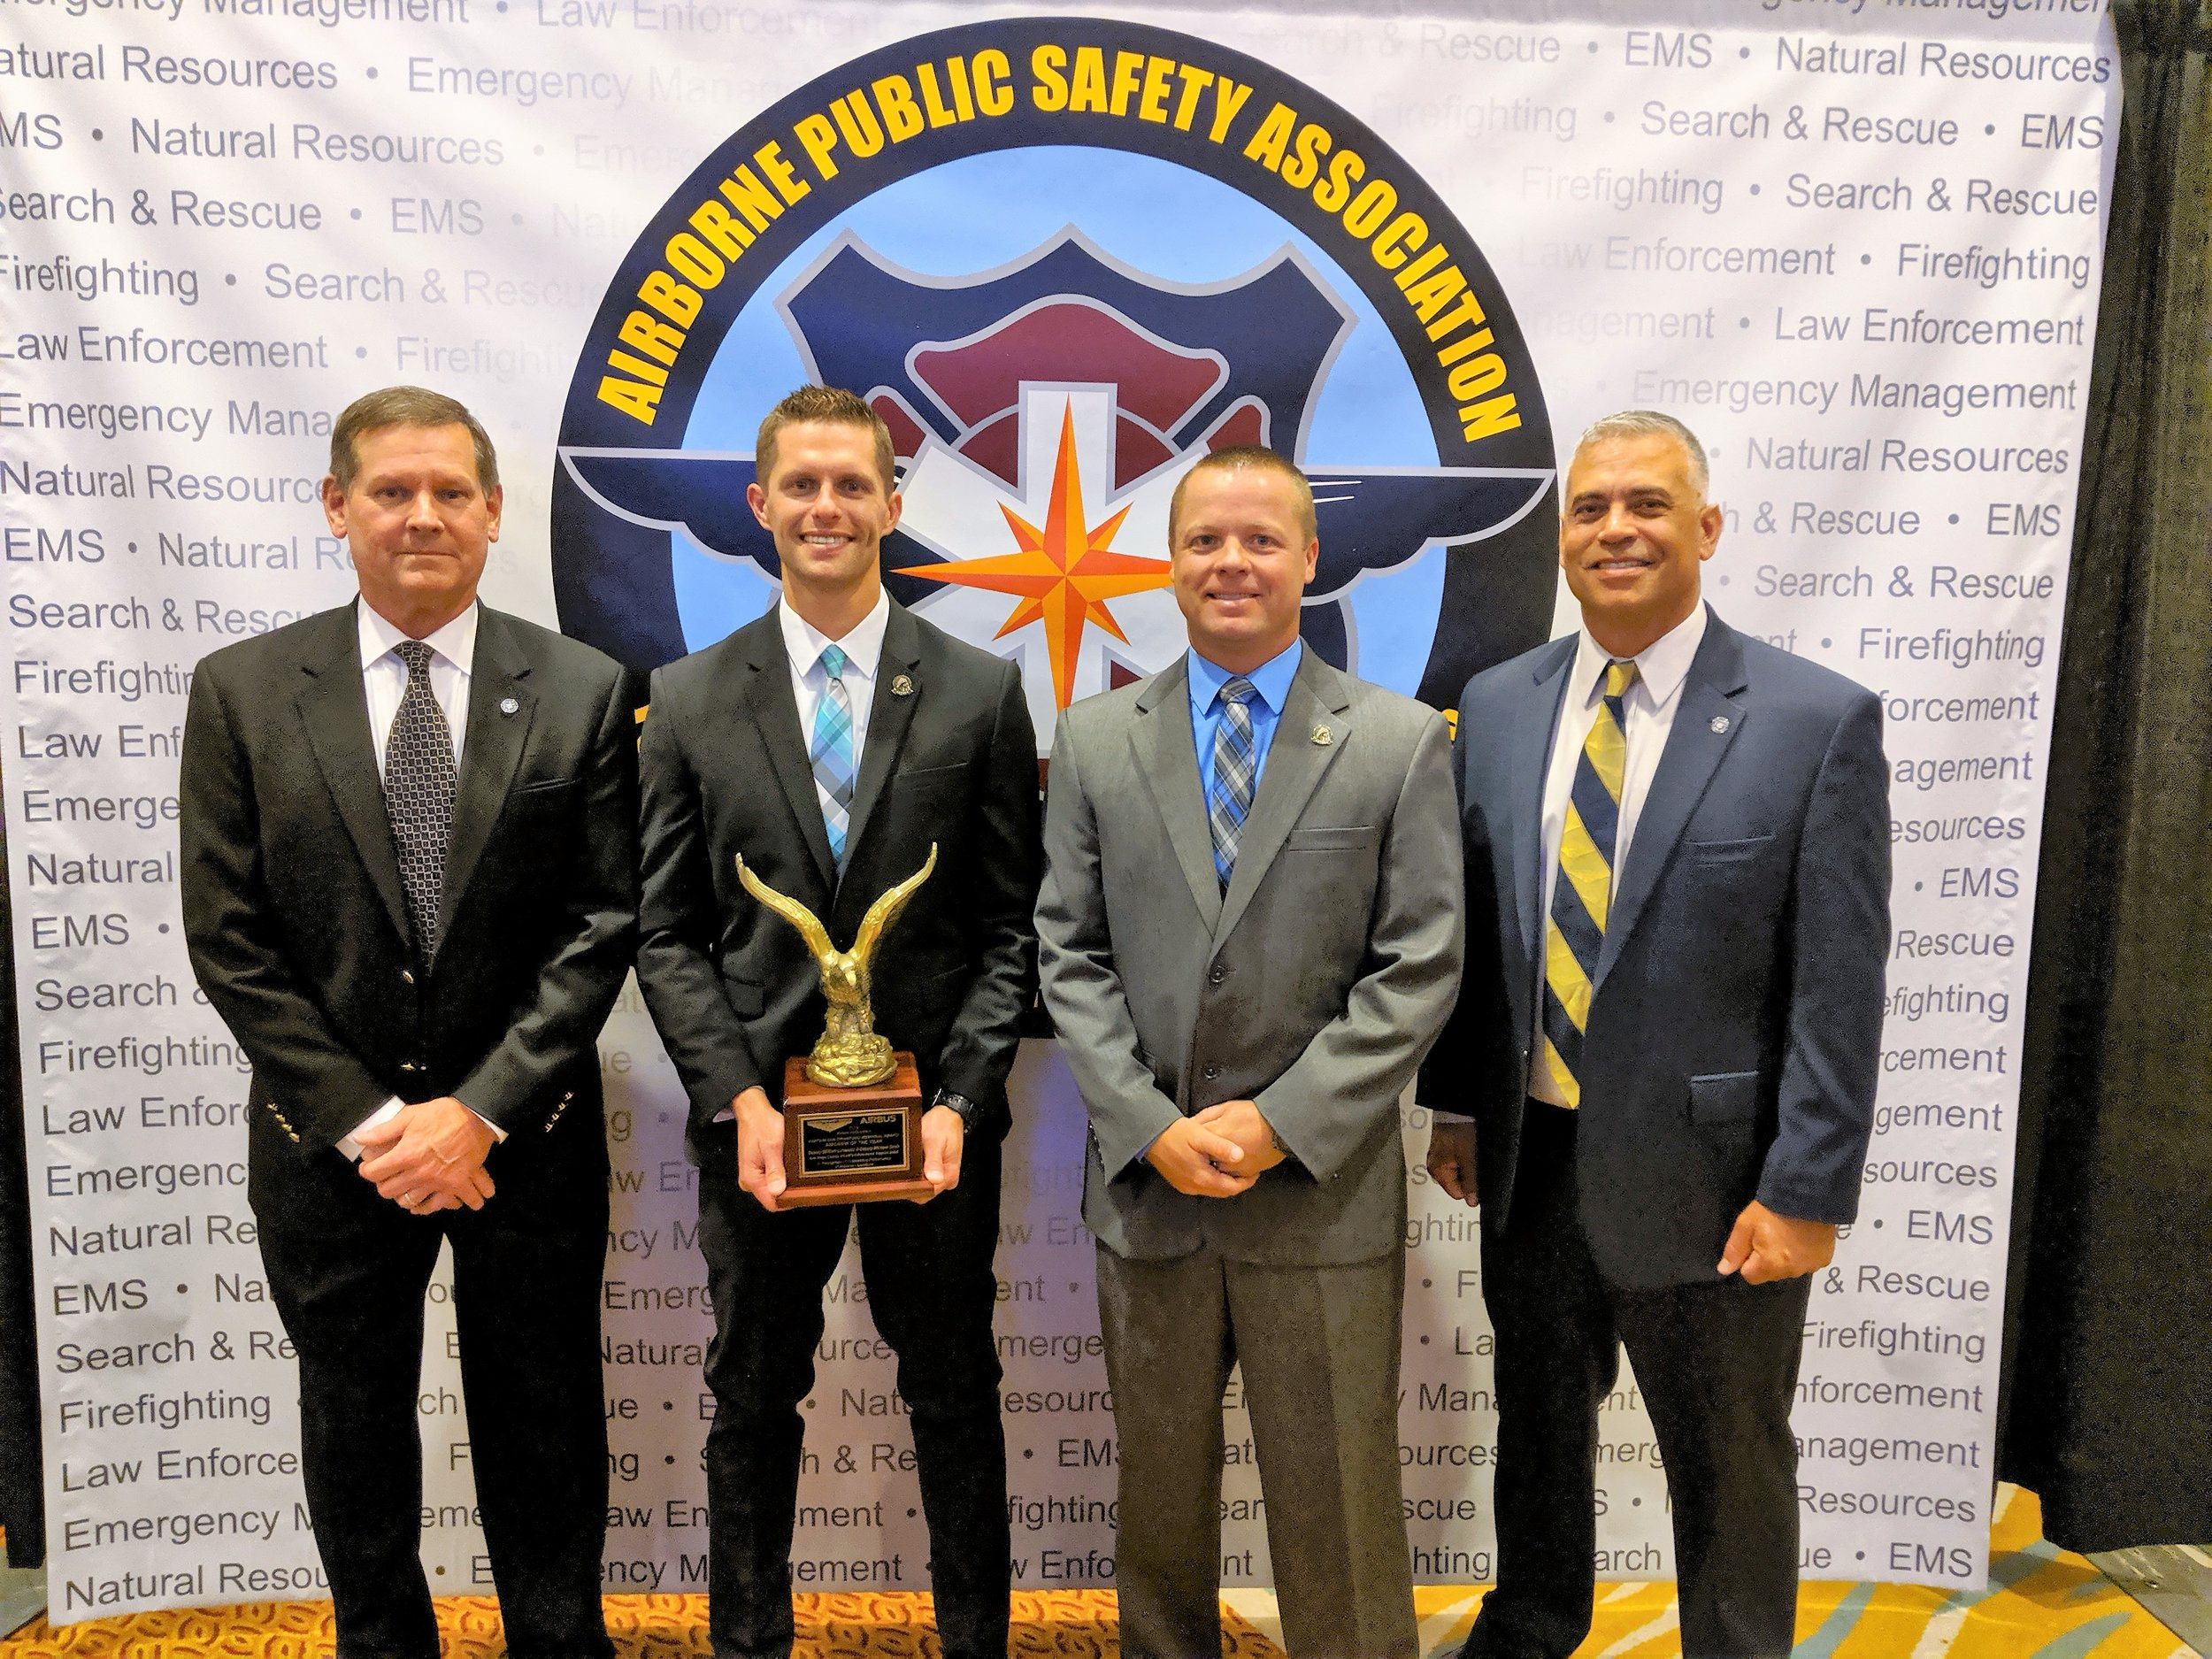 Deputies Bill Liniewicz (center left) and Michael Davis (center right) at the APSA ceremony on July 19.